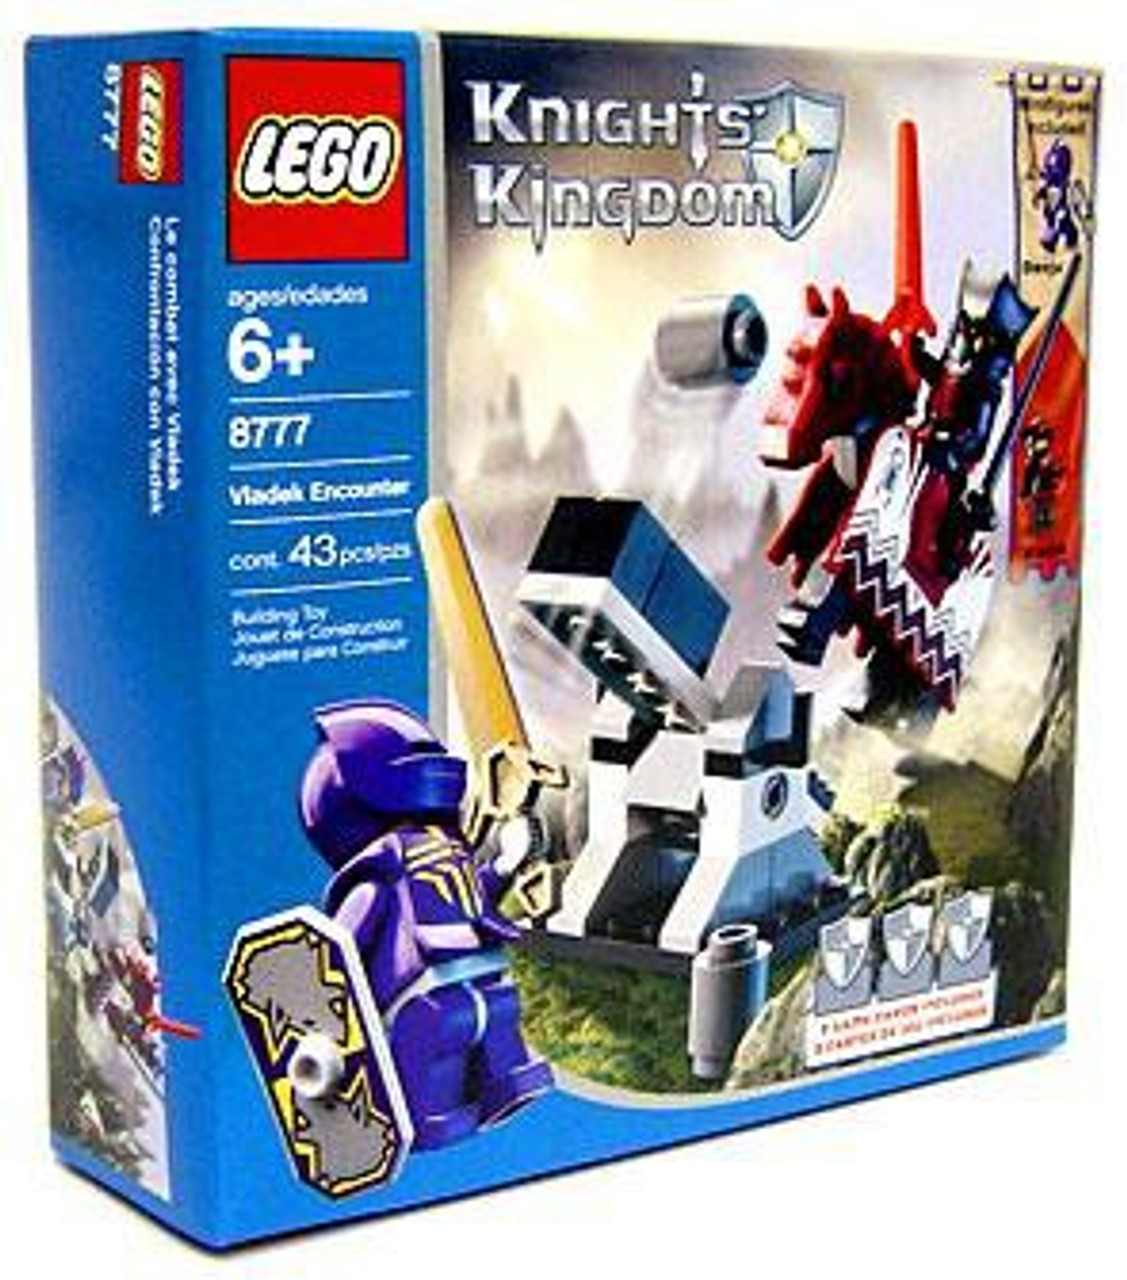 LEGO Knights Kingdom Vladek Encounter Set #8777